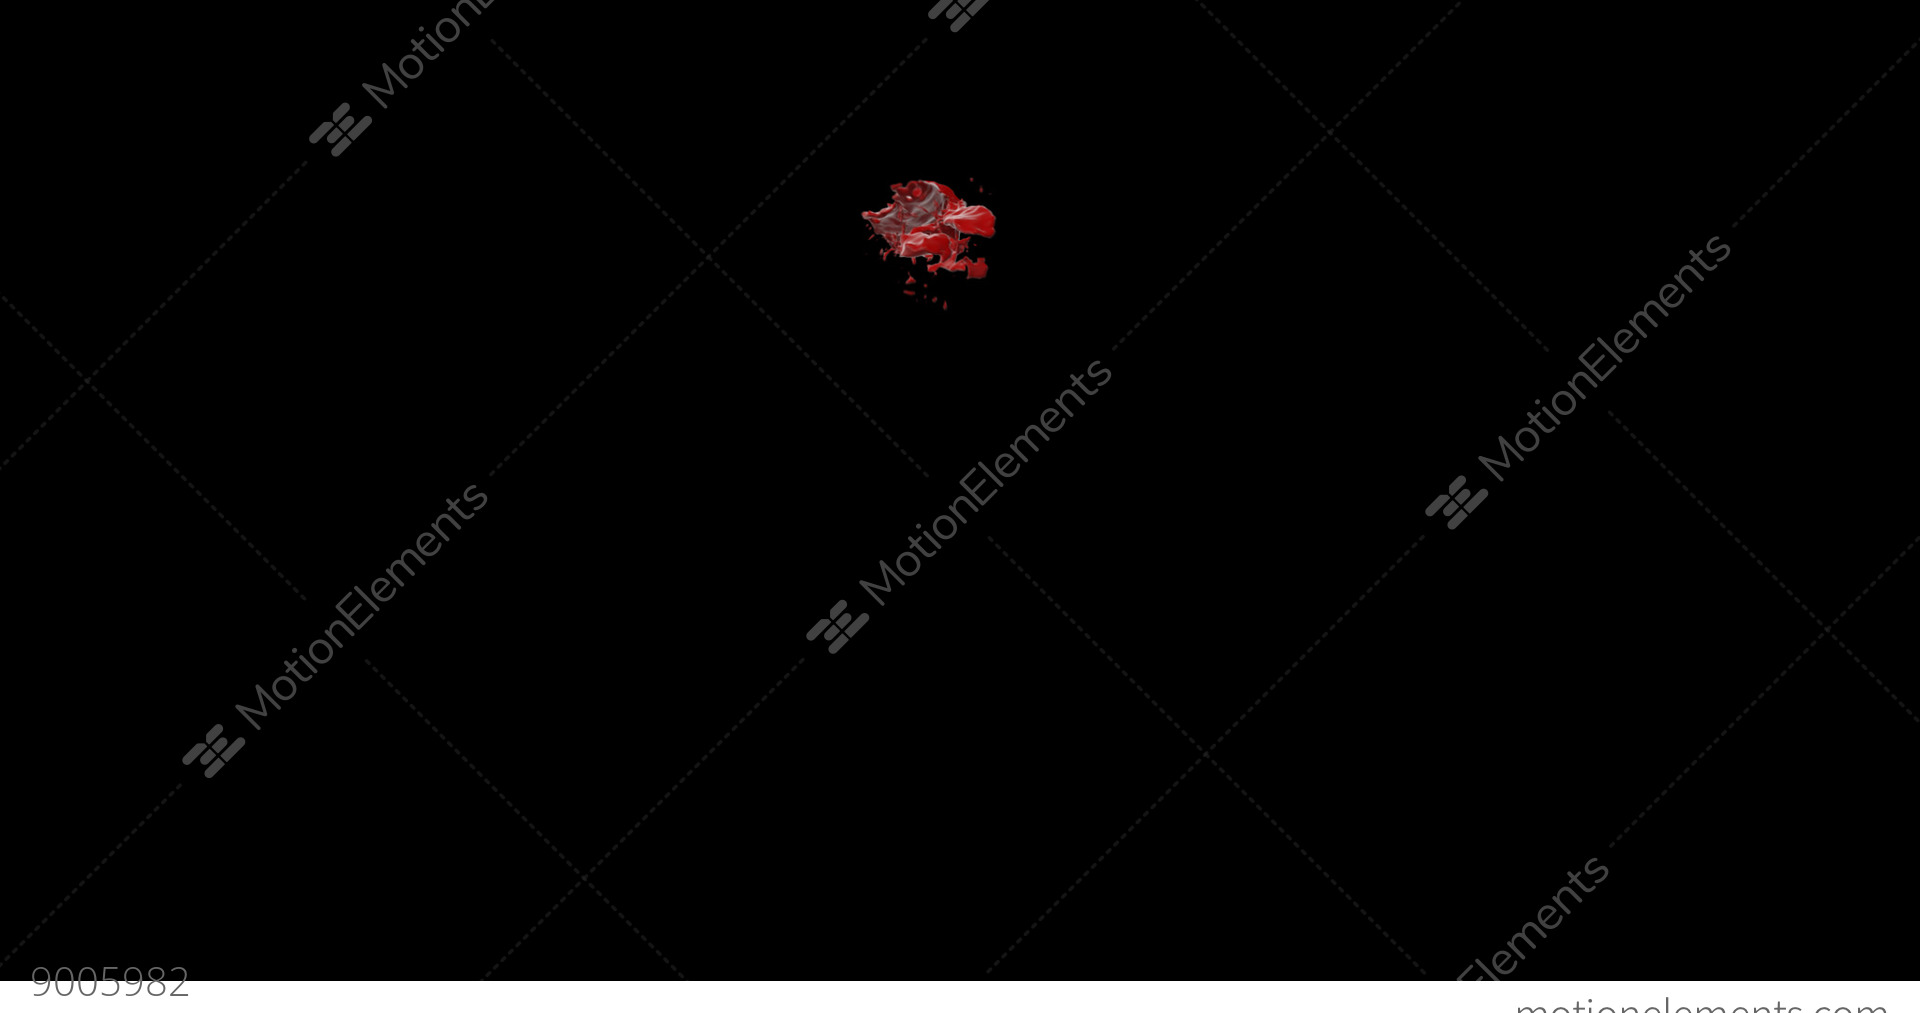 Hd Blood Burst Motion Blur (With Alpha) 138 Stock video footage